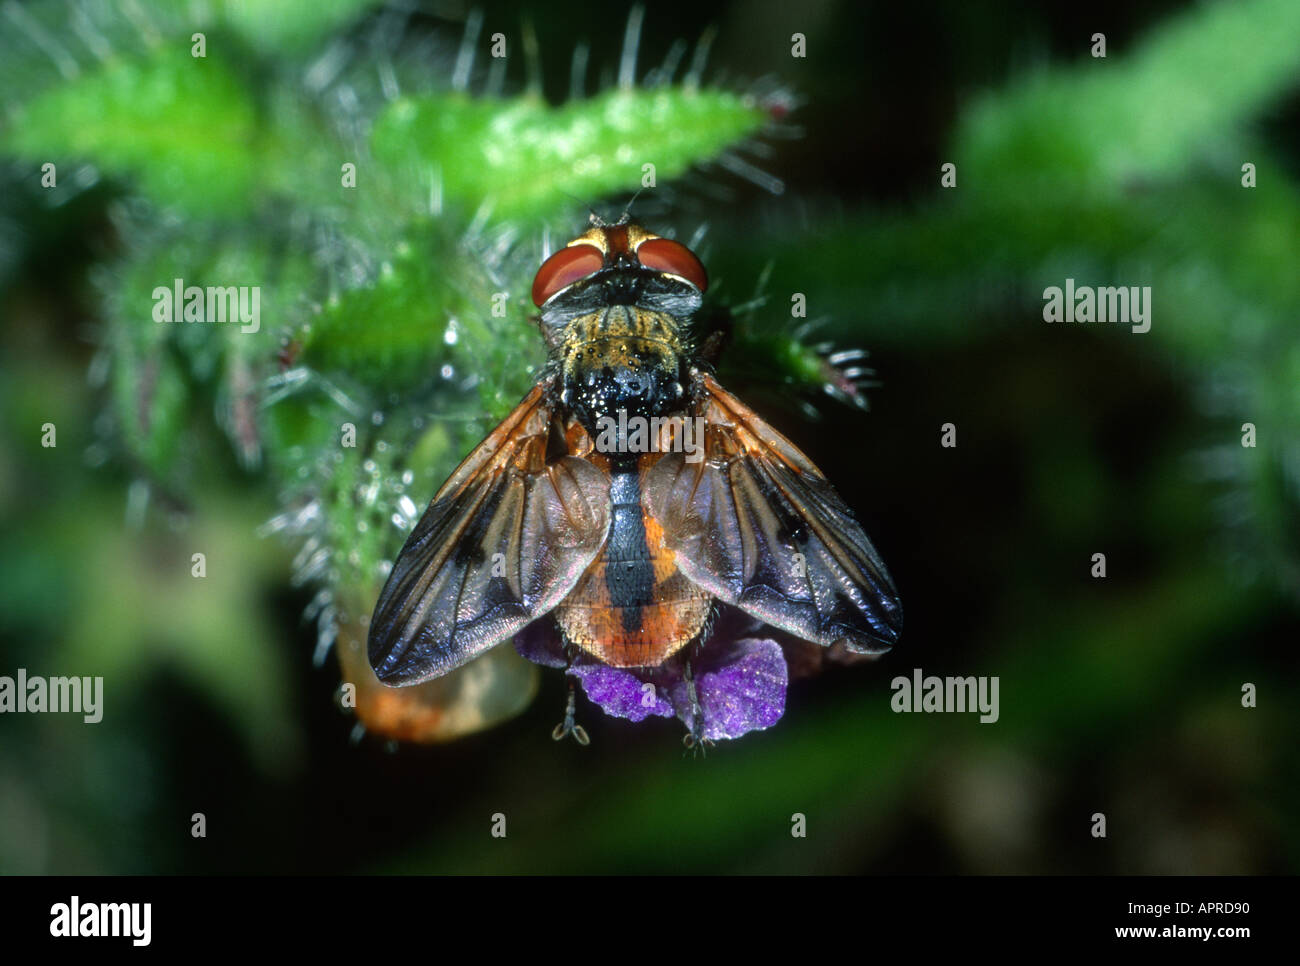 Tachinid Fly, Family Tachinidae. On flower. Top view Stock Photo